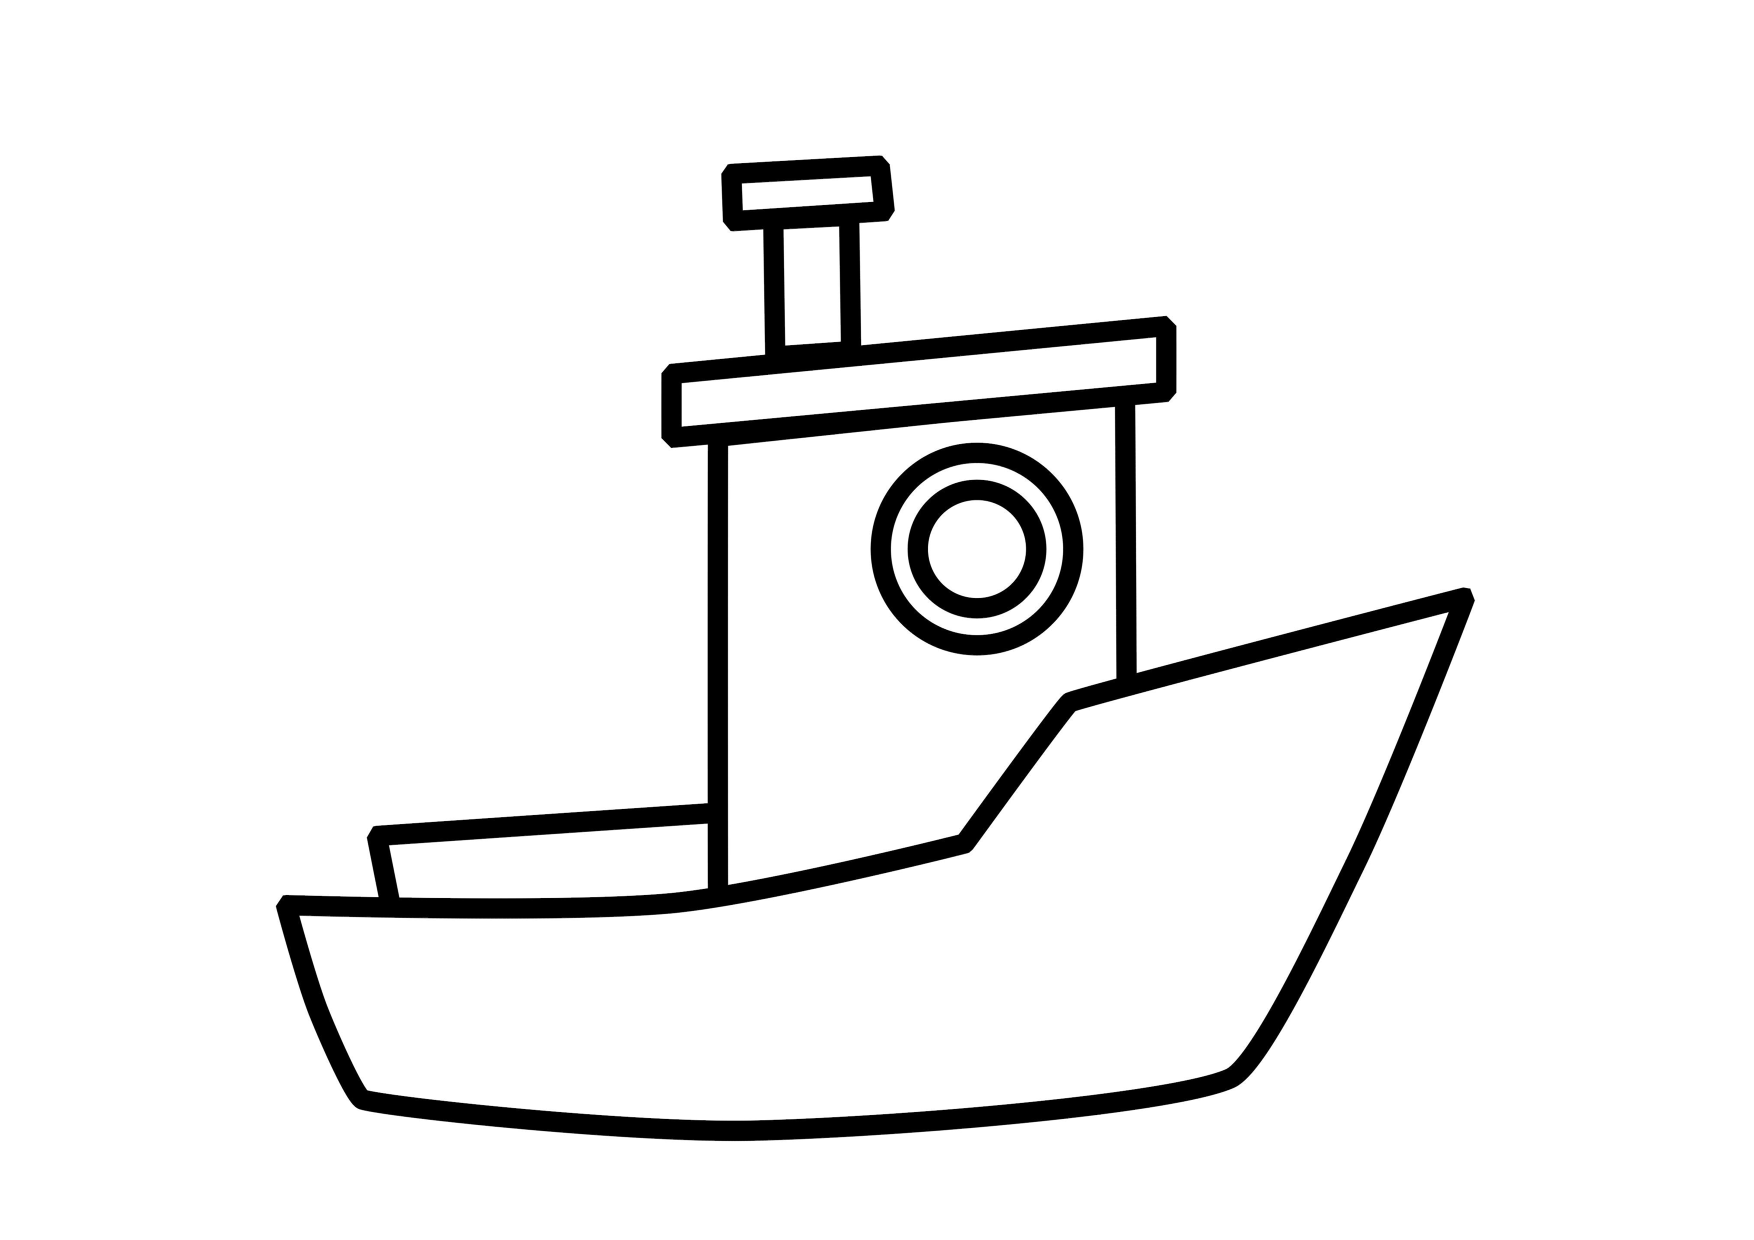 little Boat coloring page